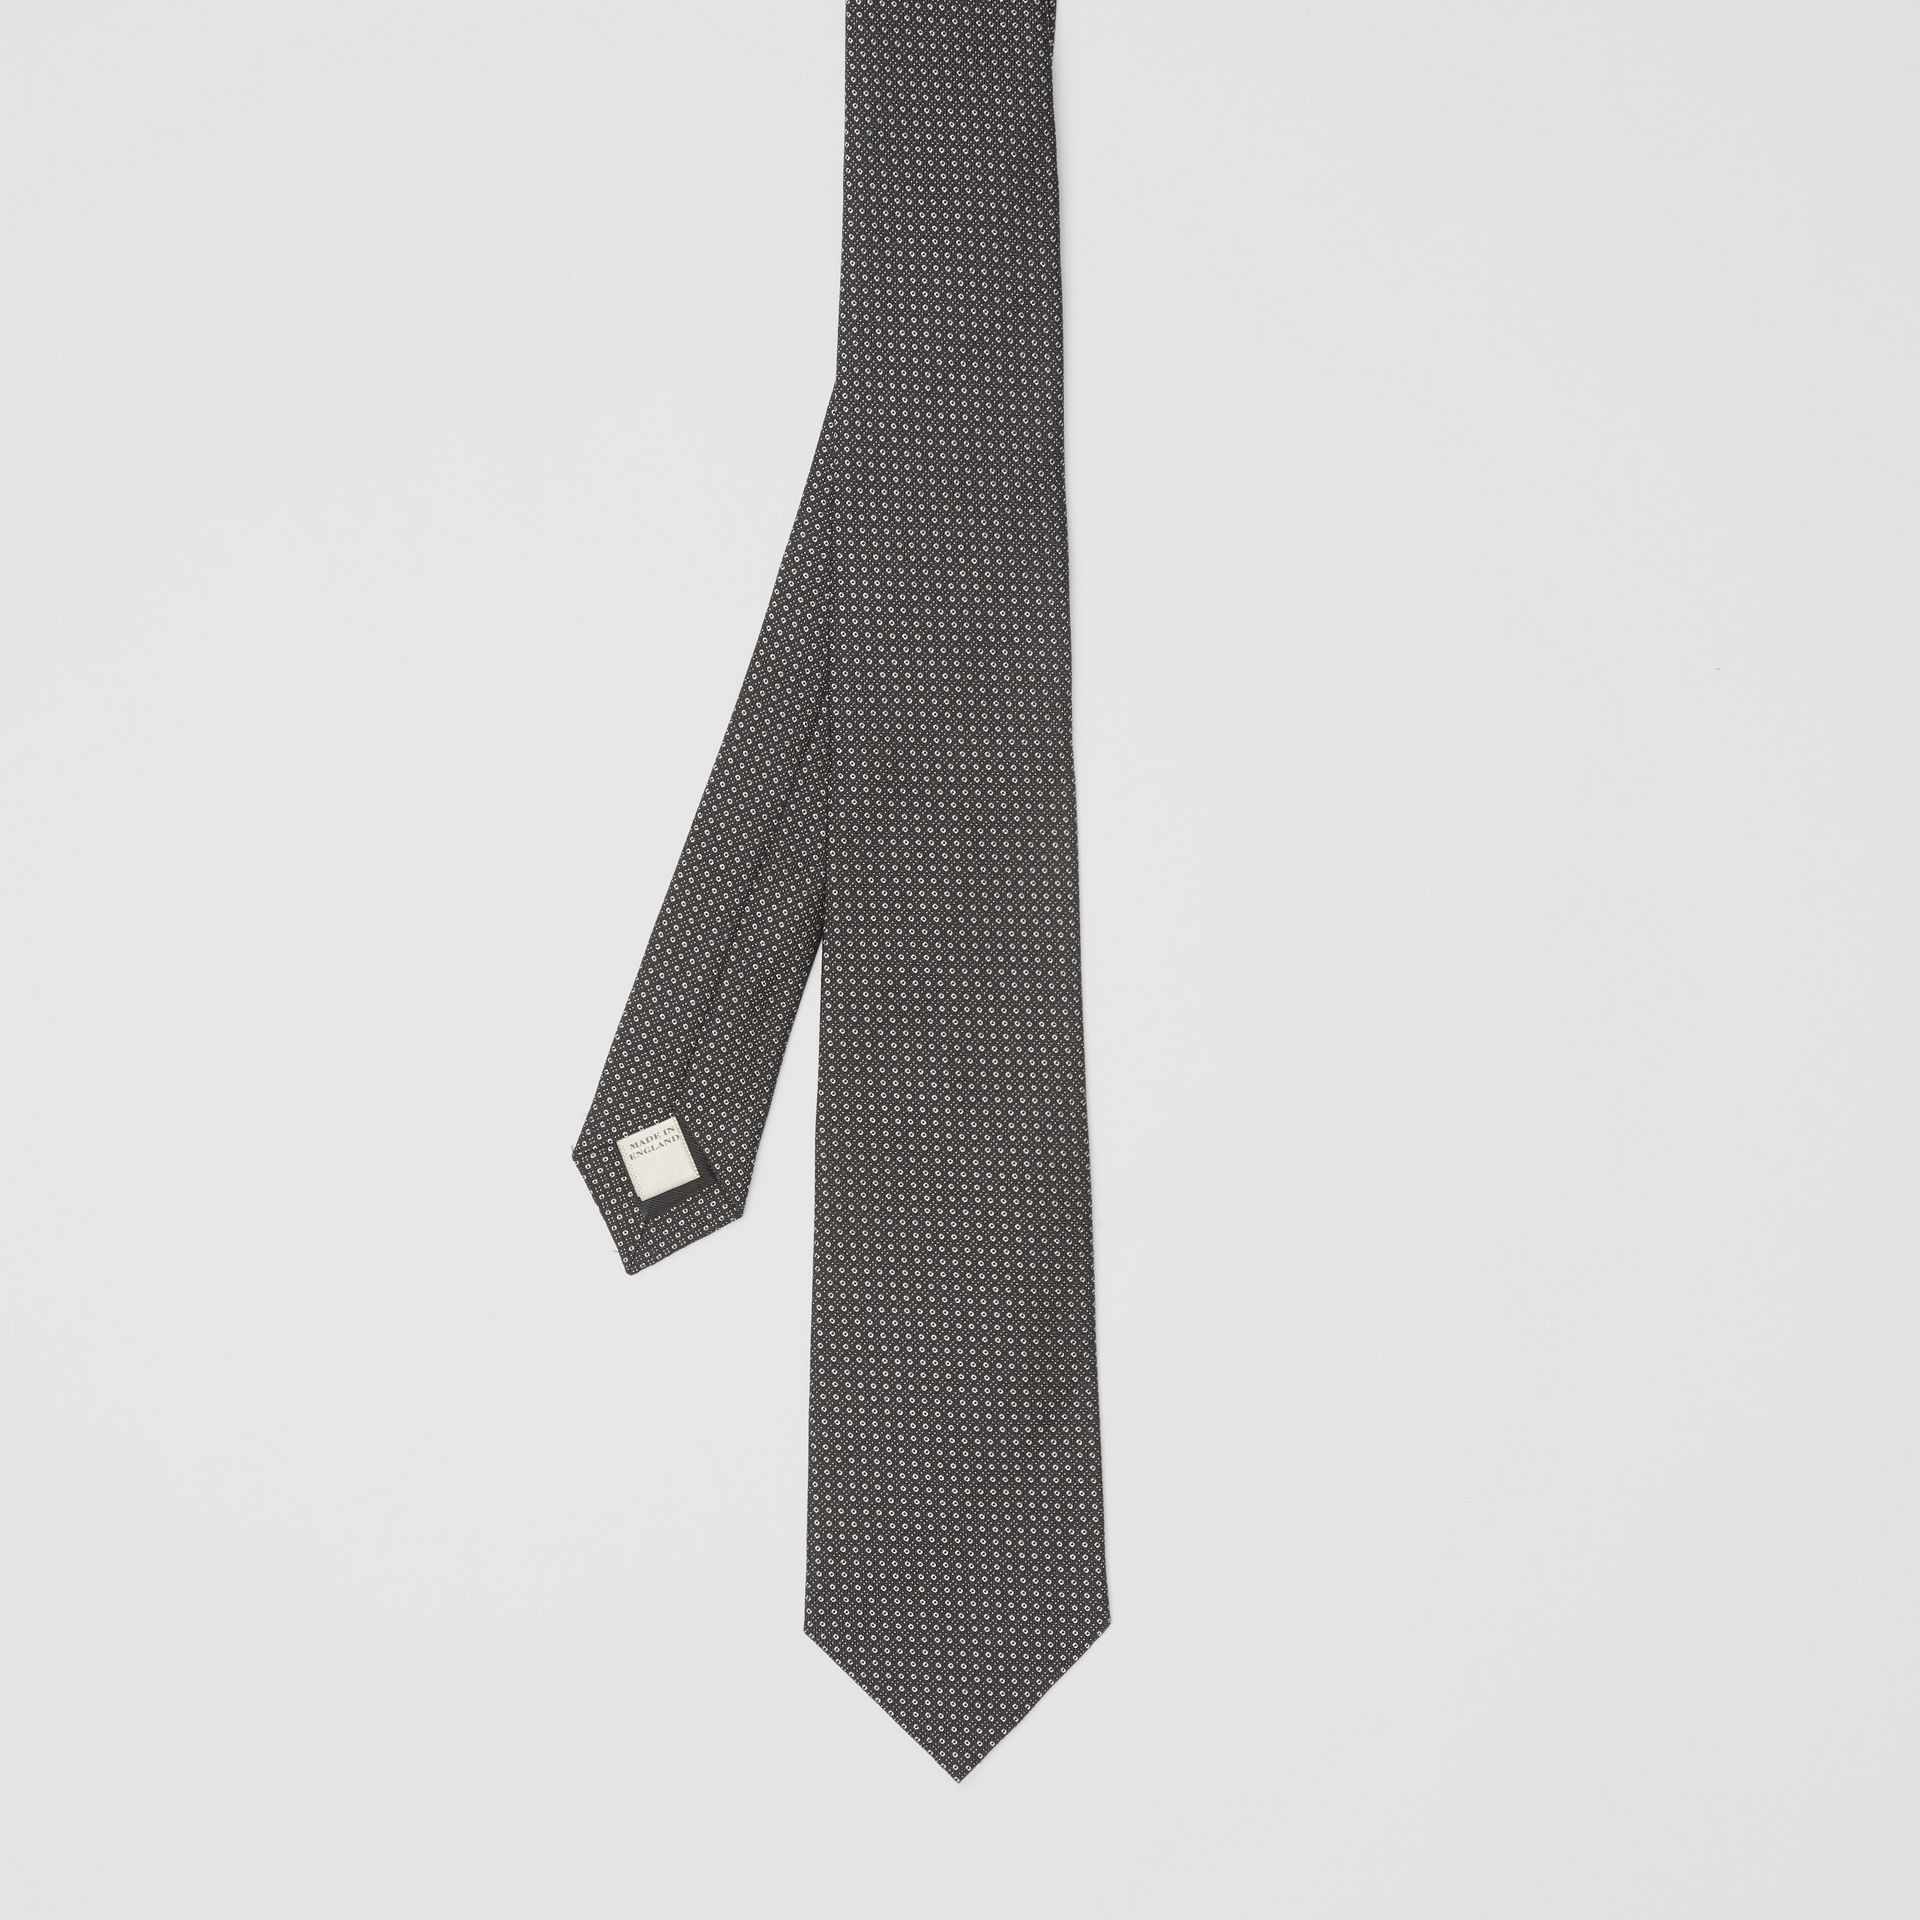 Classic Cut Micro Dot Silk Jacquard Tie in Black - Men | Burberry - gallery image 4